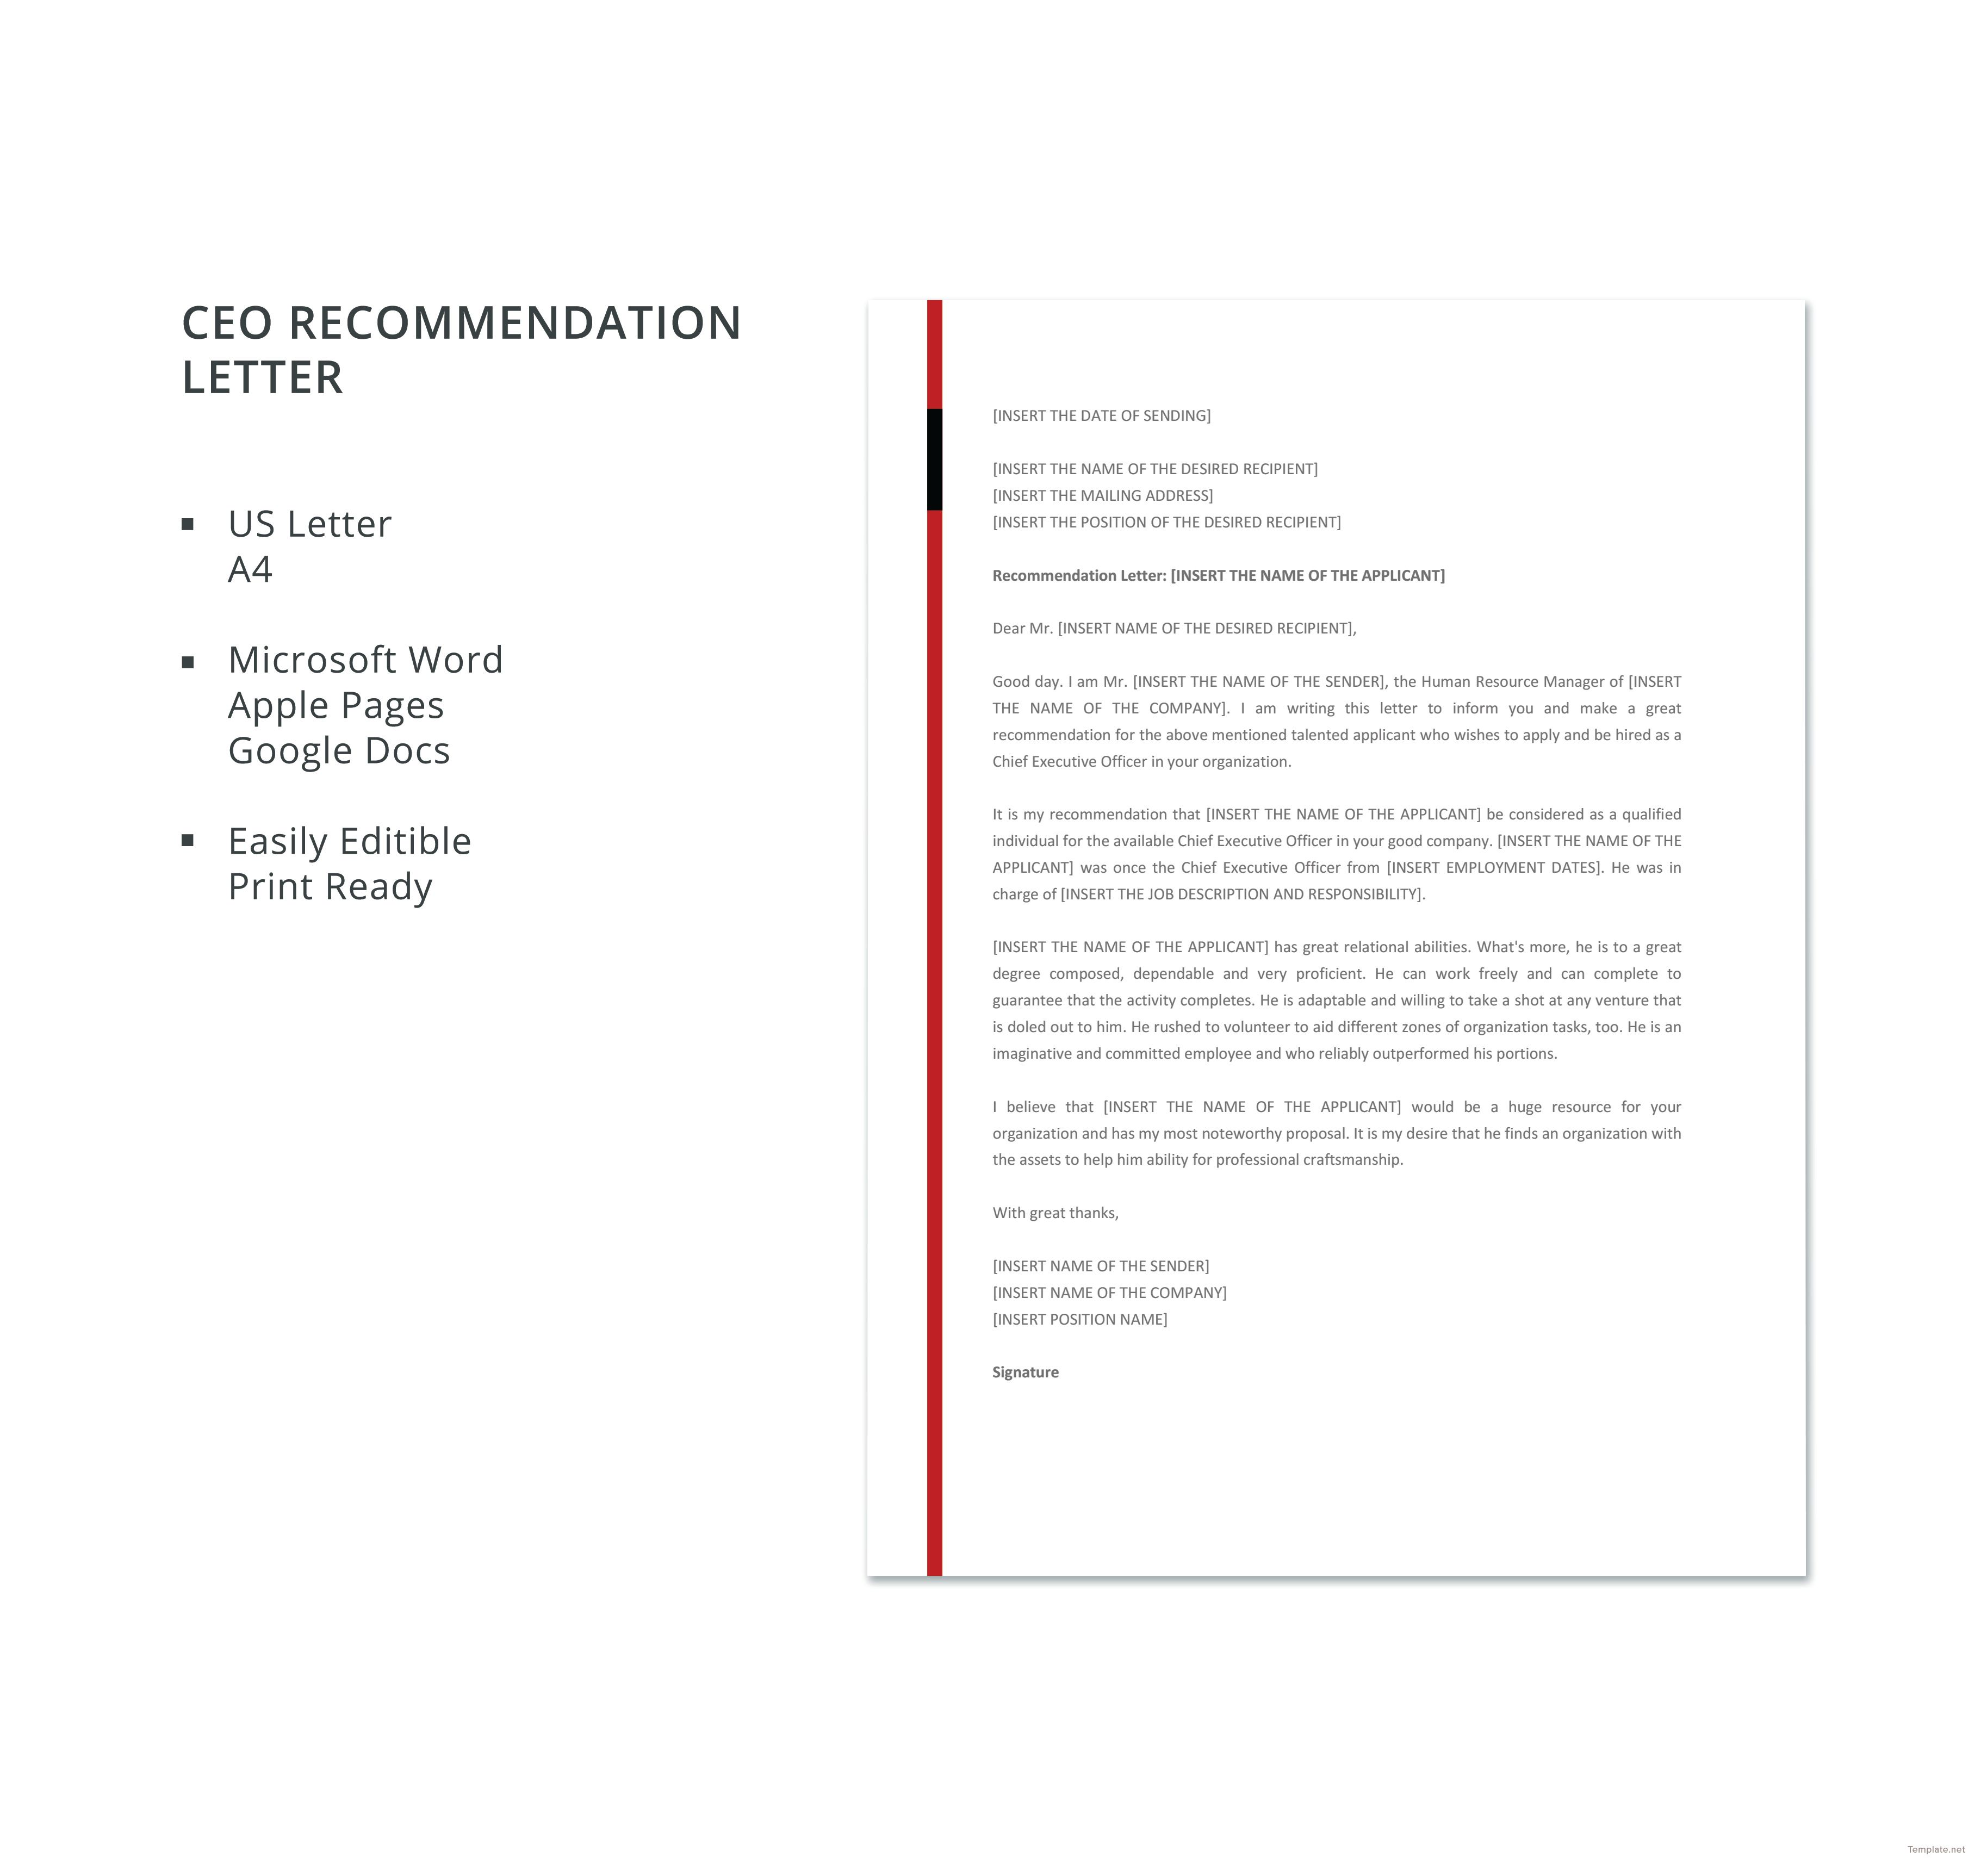 Free Recommendation Letter Template Interesting Download Ceo Recommendation Letter Template For Free In Ms Word .